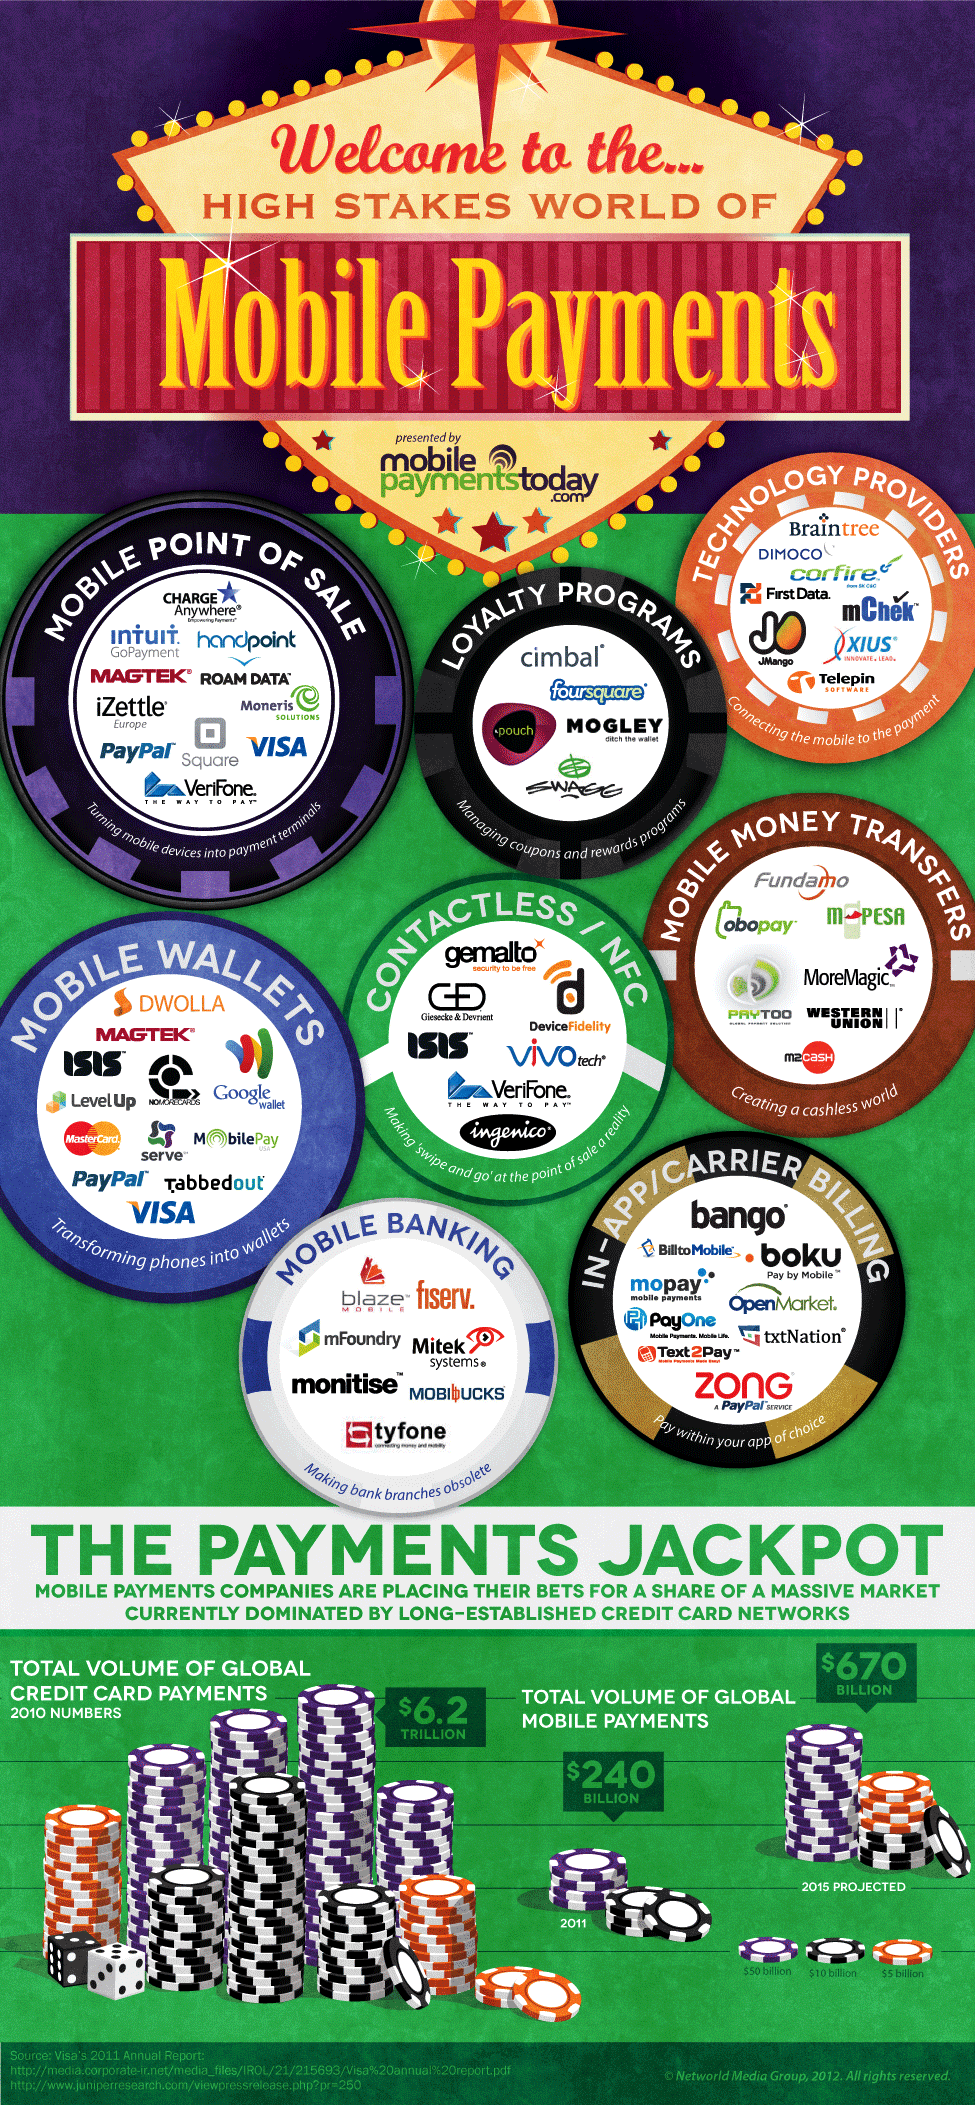 mobile payments infographic The High Stakes World of Mobile Payments [Infographic]